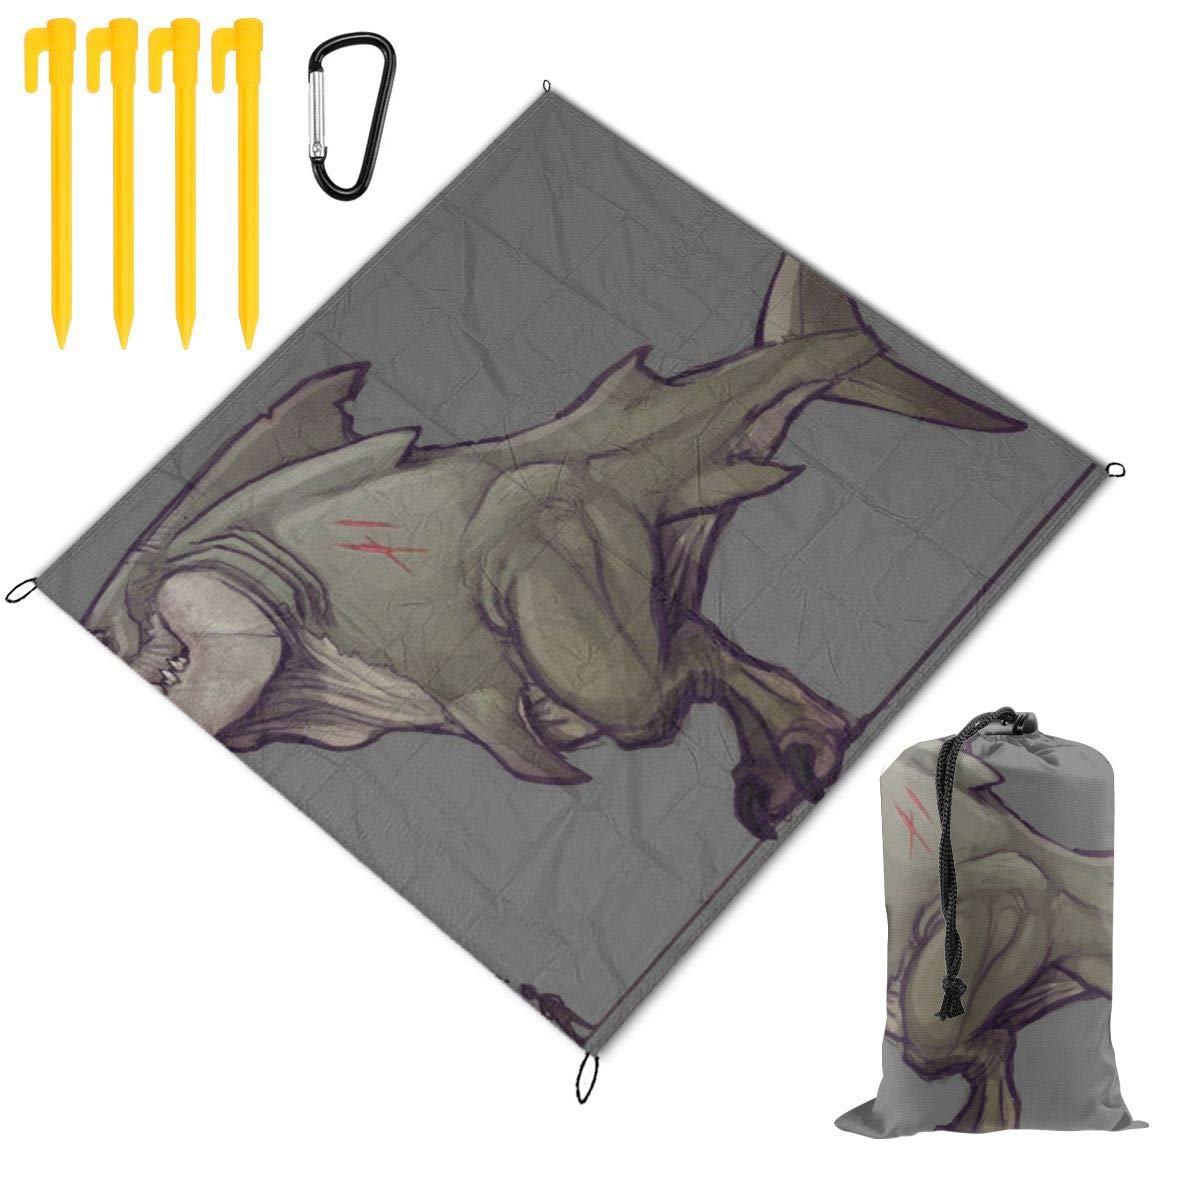 FunnyCustom Picnic Blanket Portable Waterproof Tiranodon Megalo Tirano Rex Picnic Mat for Beach Camping 79 x 57 Inch